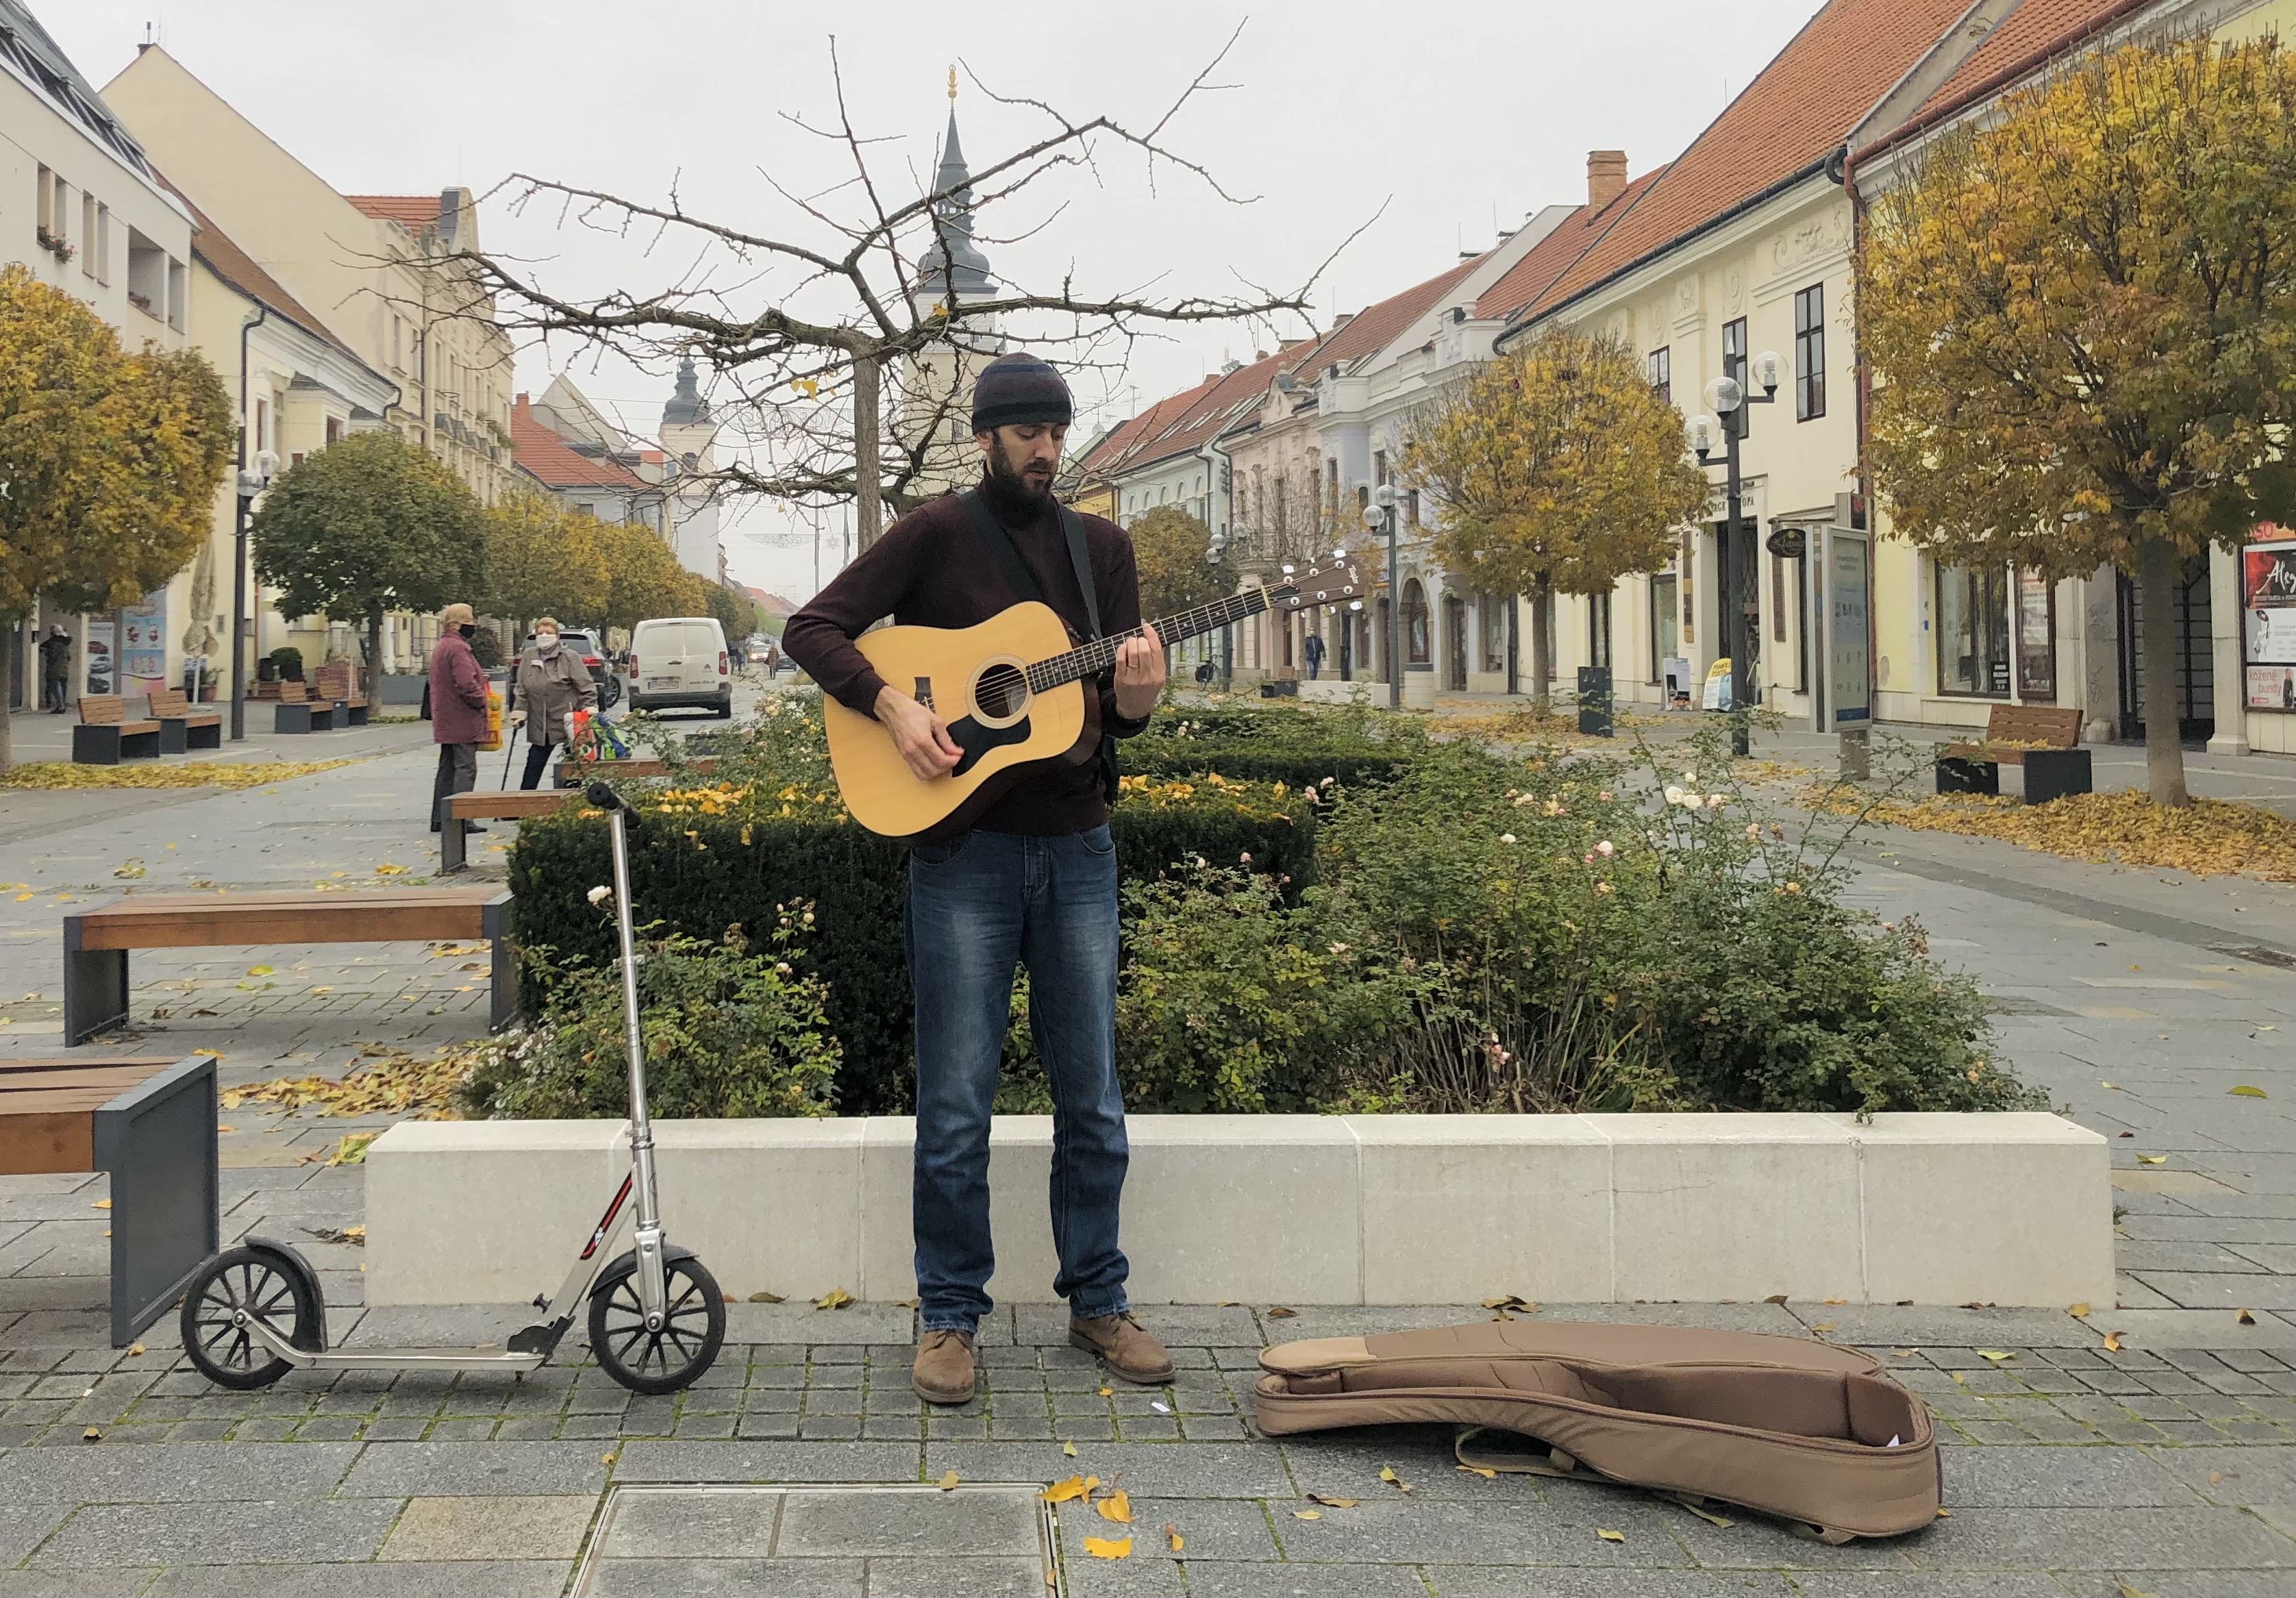 Graeme Mark: Busking is the purest form of art - you either interest people or you don't. That's why I love it so much!